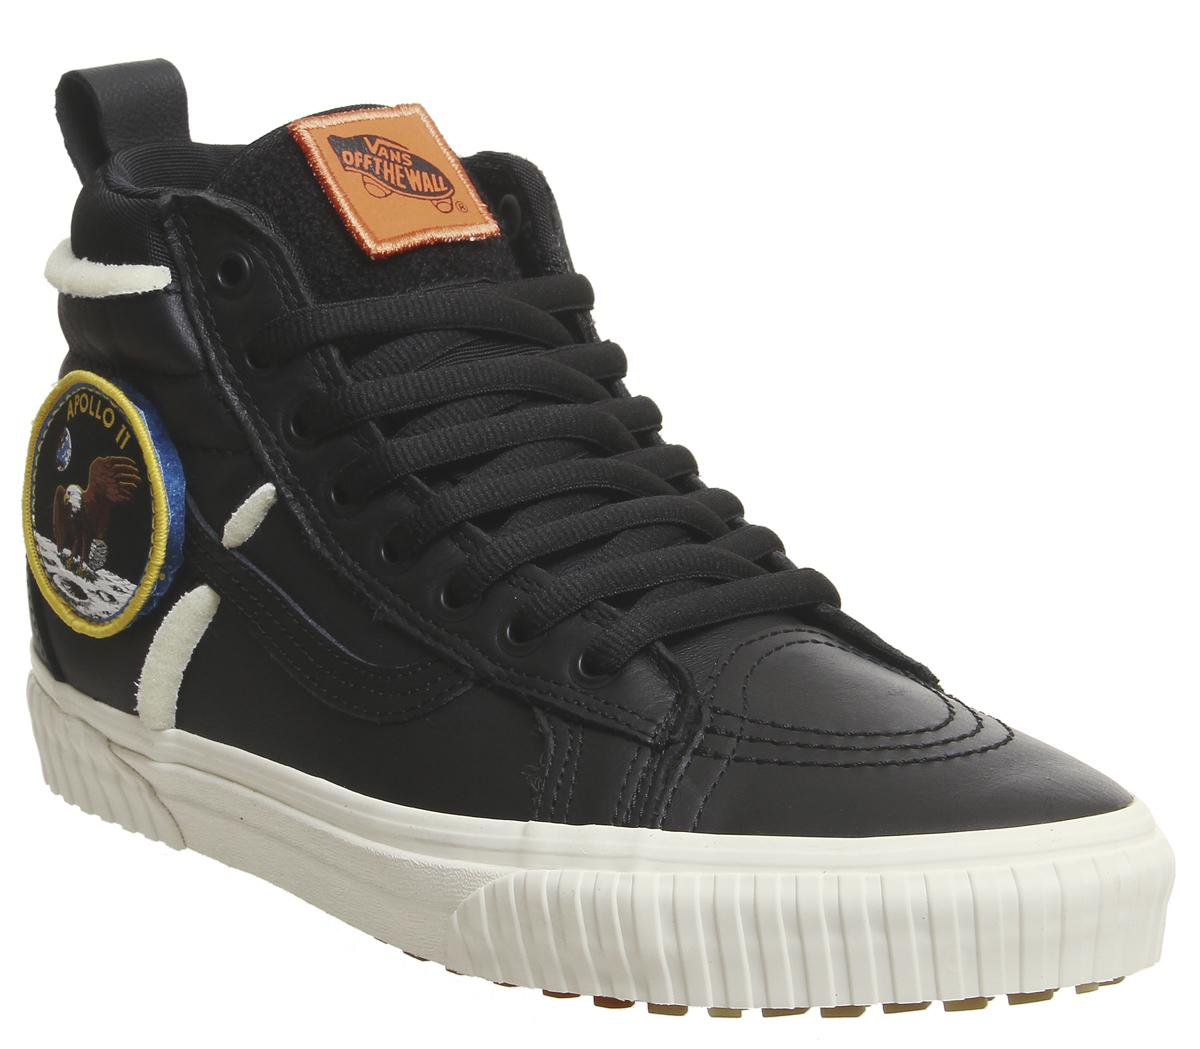 691e9c27f71 Vans Sk8 Hi Mte Trainers in Black for Men - Lyst